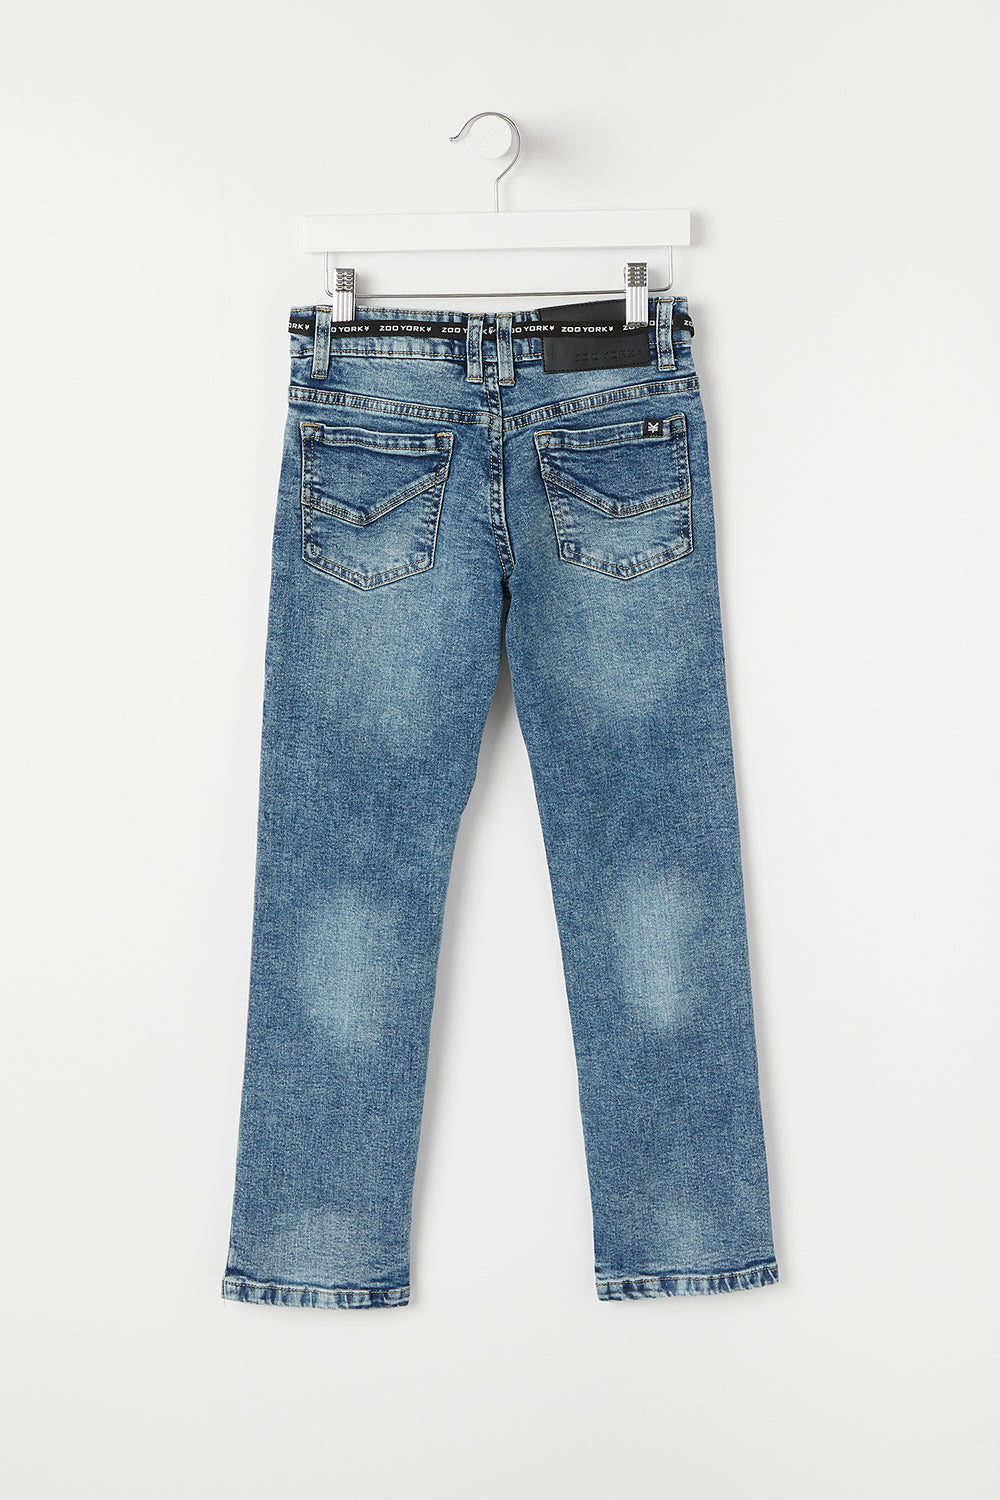 Jeans Clairs Coupe Etroite d'Aspect Usé Zoo York Junior Bleu pale